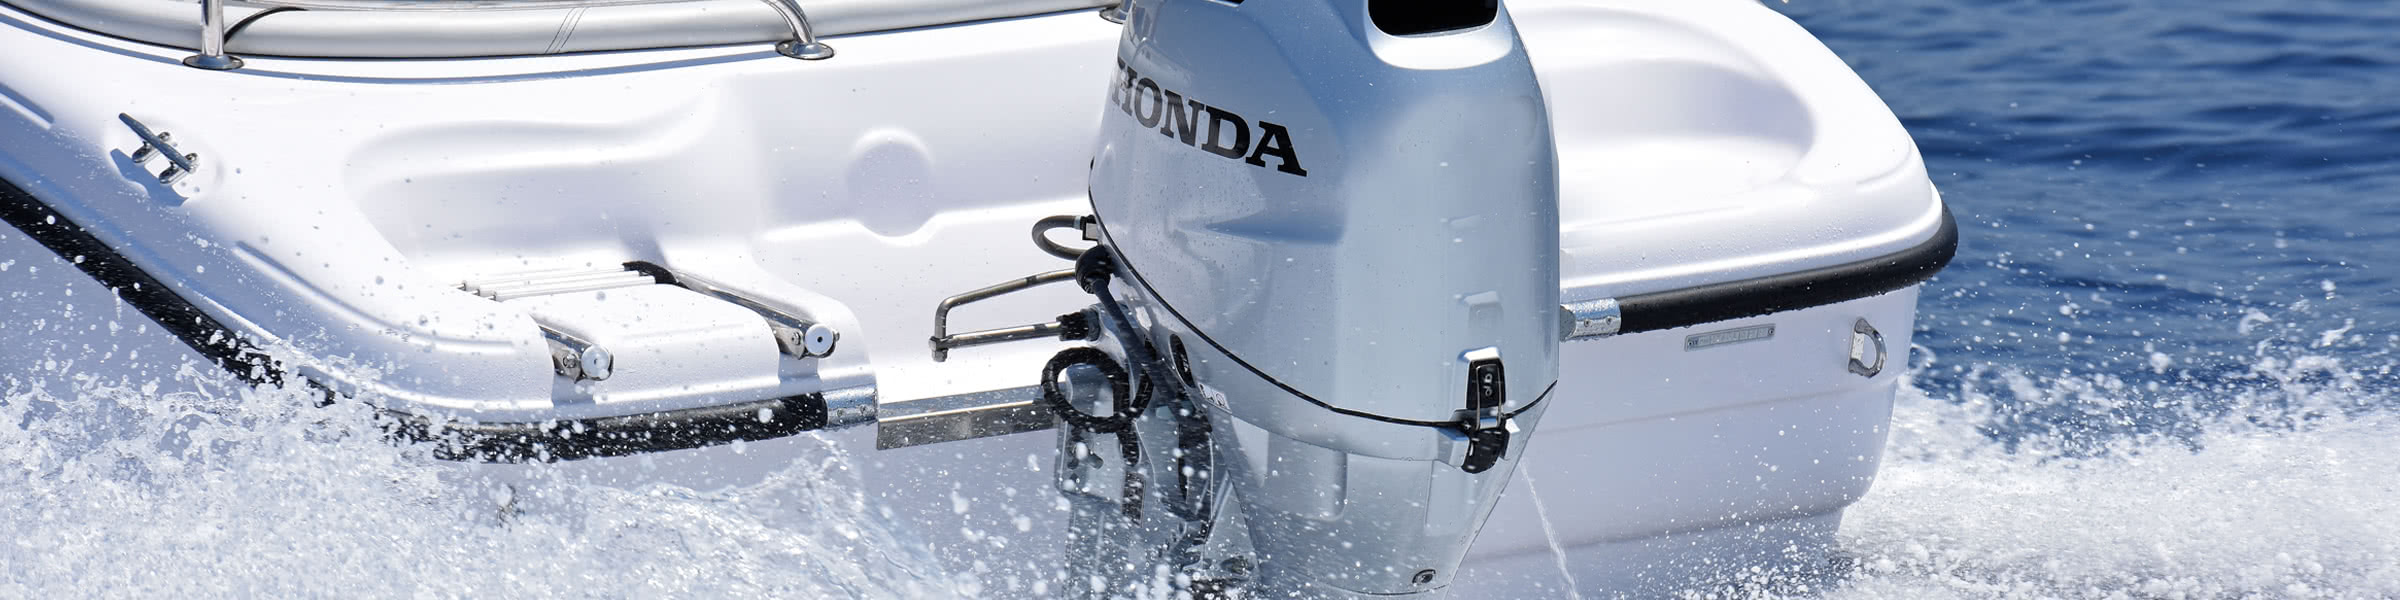 Honda outboard engines at excellent prices!